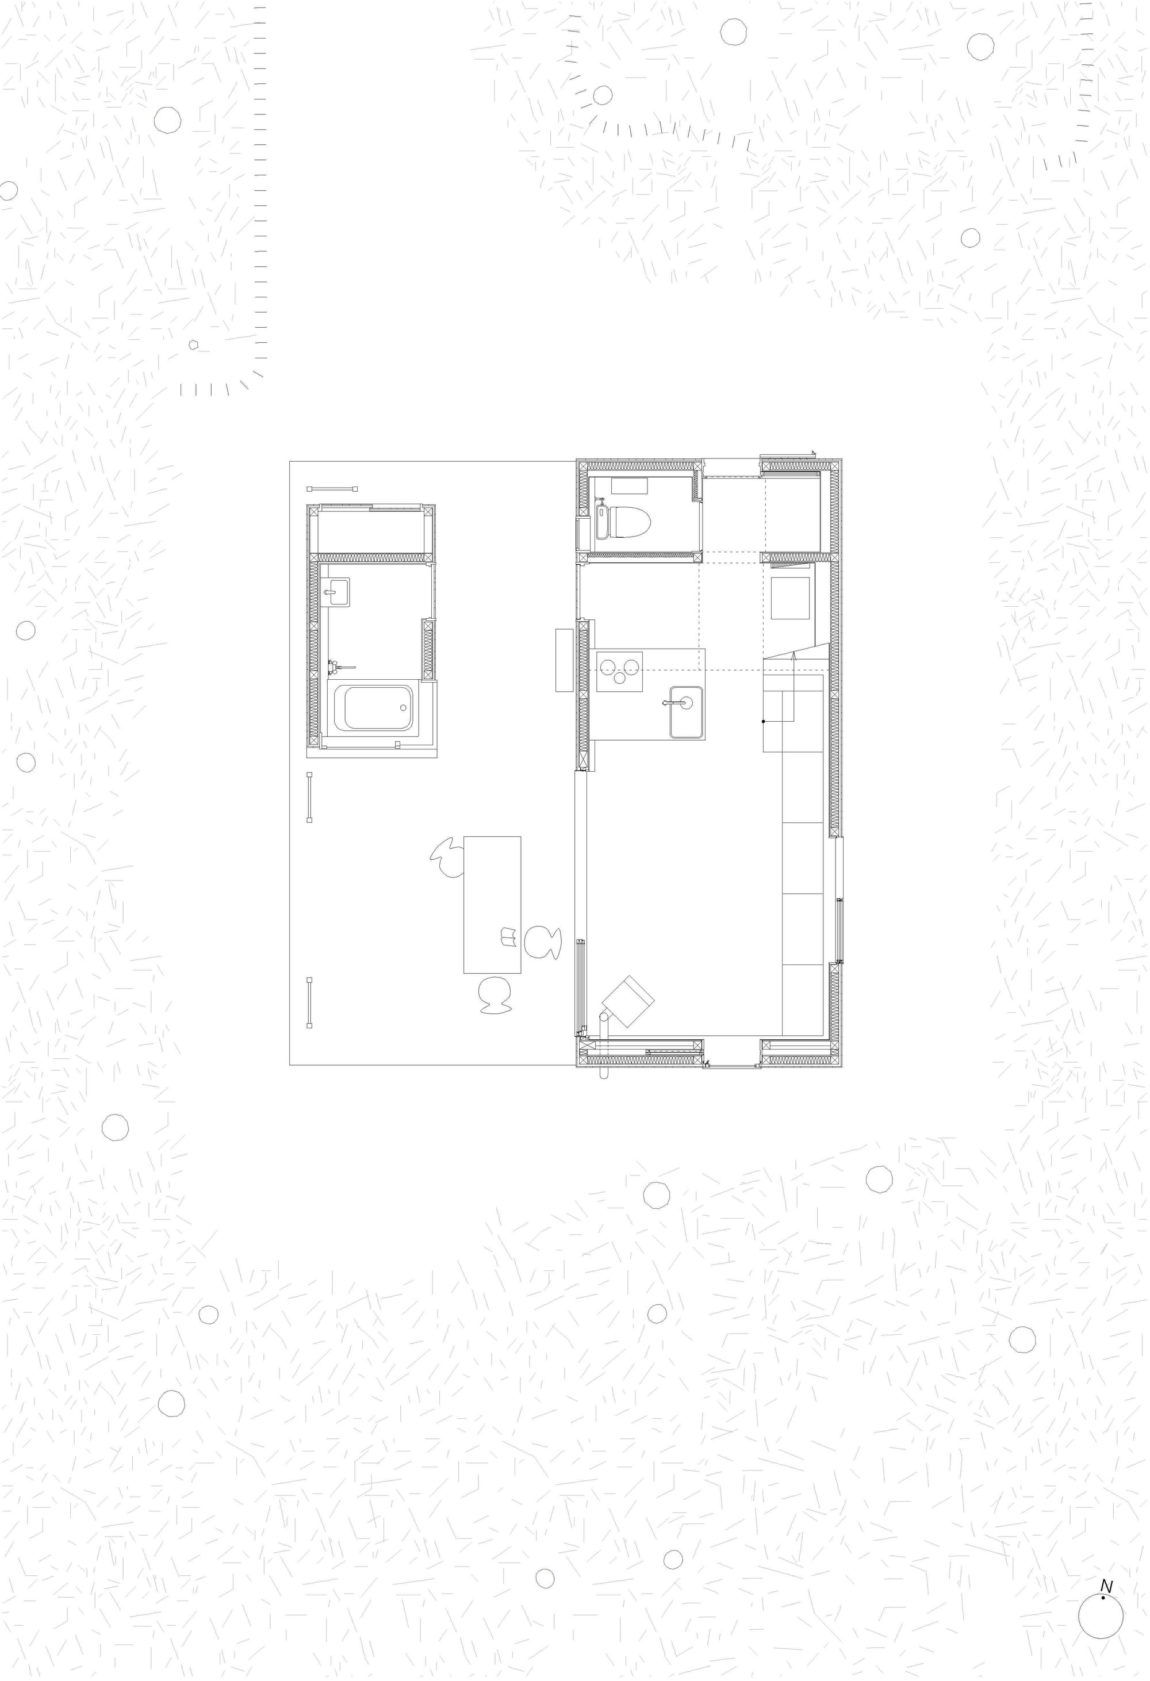 Villa in Hakuba by Naka Architects (14)